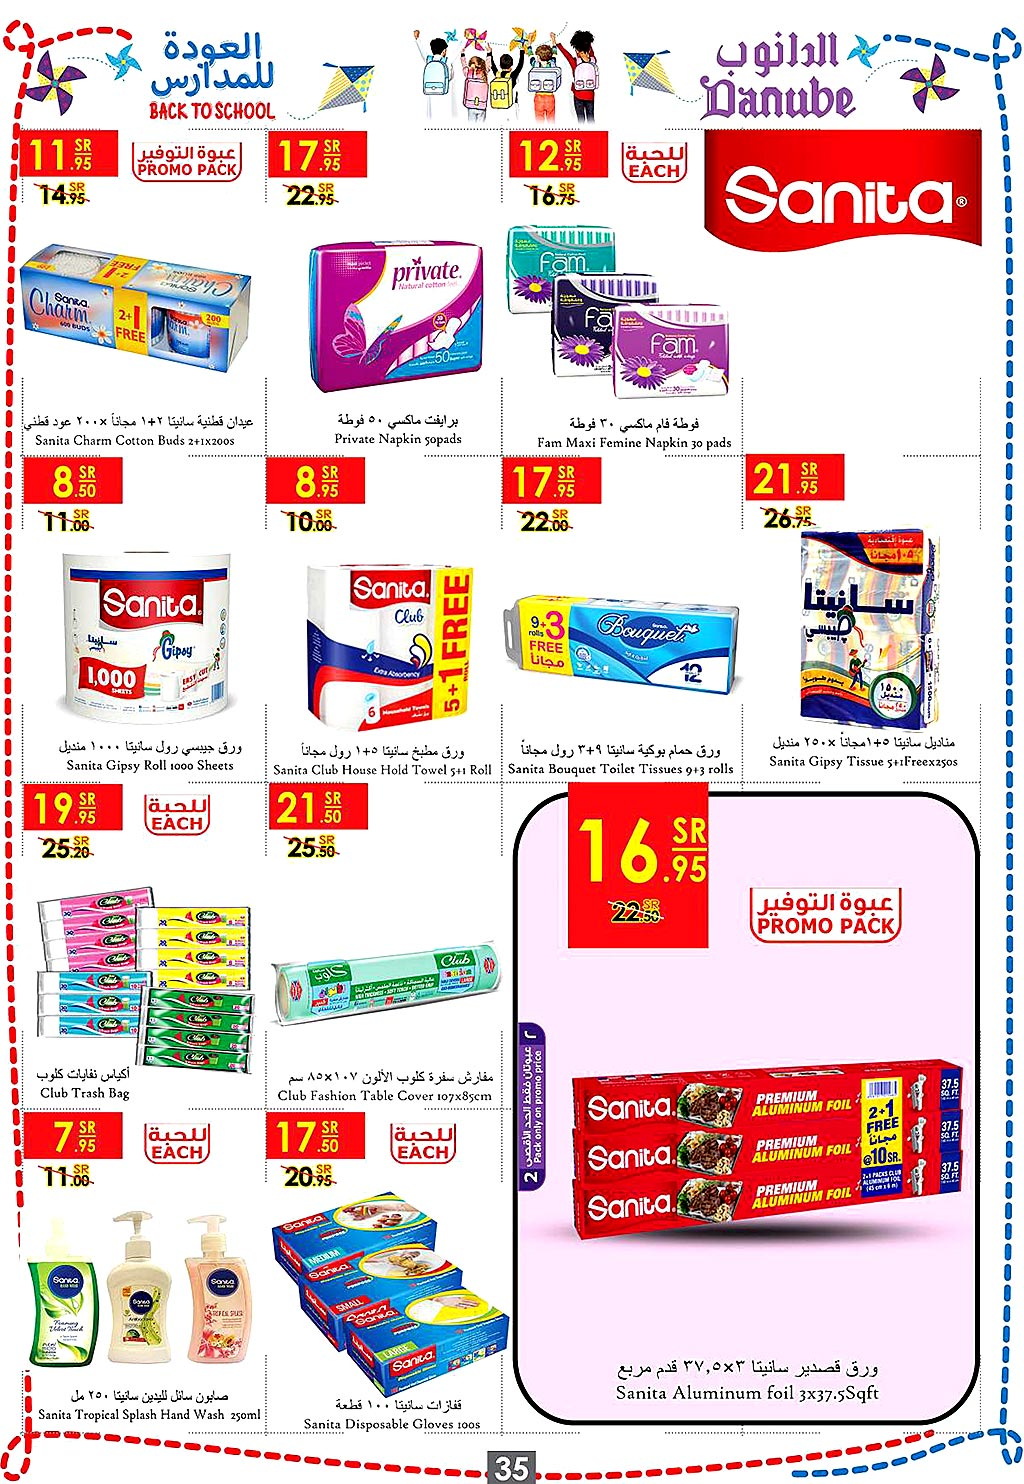 danube offers from 7aug to 21aug 2019 page number 34 عروض الدانوب من 7 أغسطس حتى 21 أغسطس 2019 صفحة رقم 34